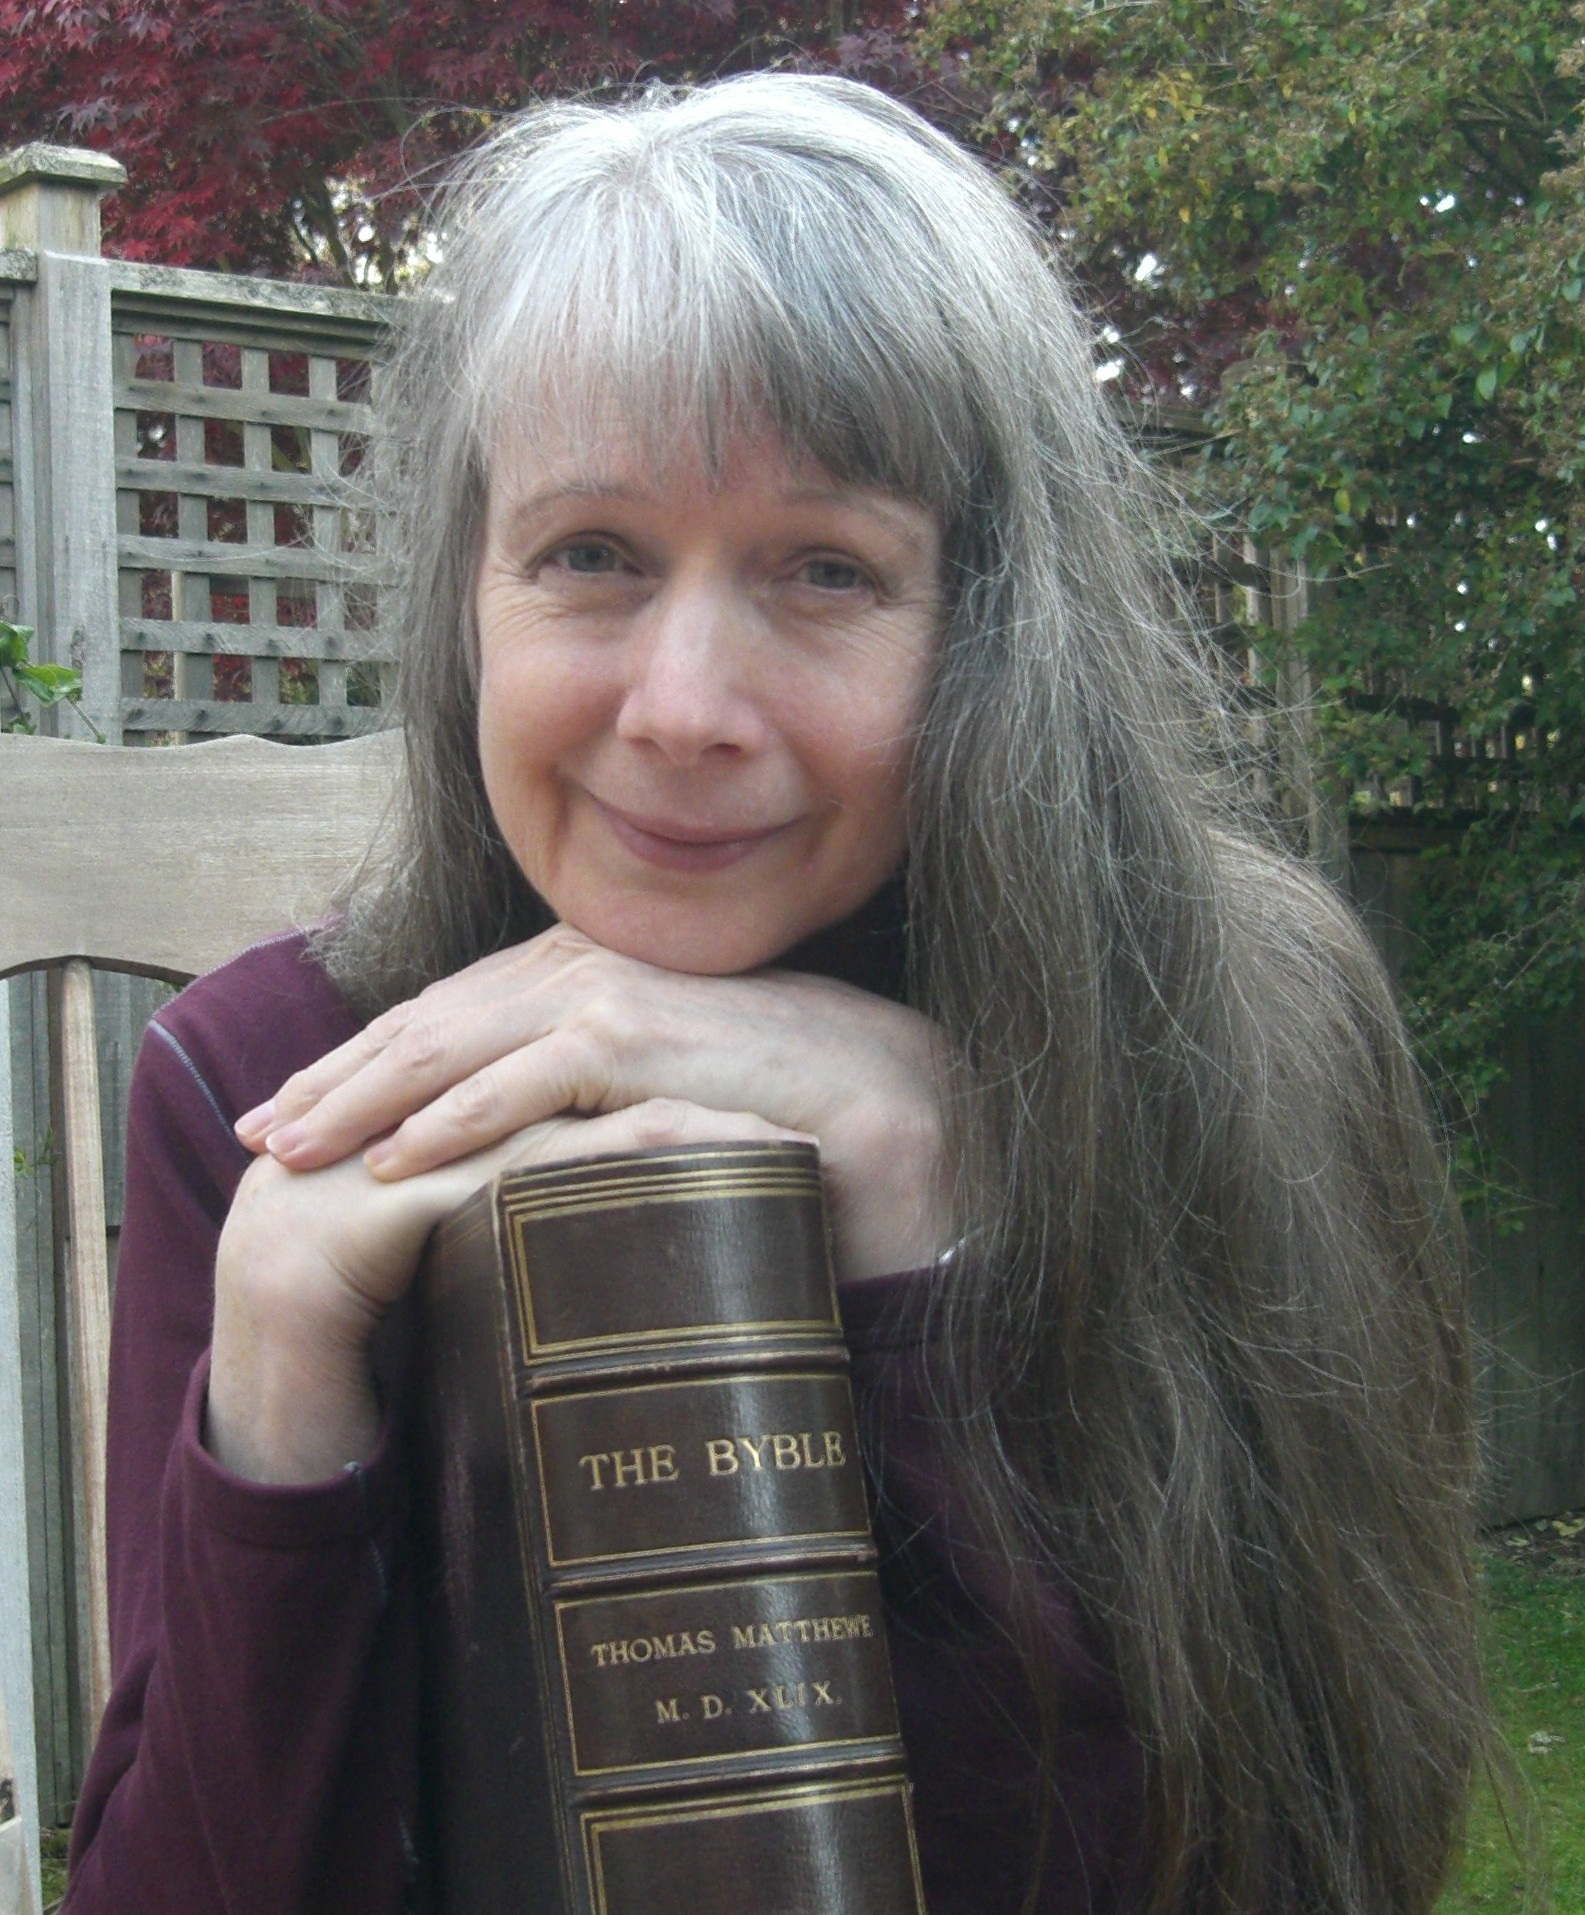 Ruth Magnusson Davis with the Matthew Bible